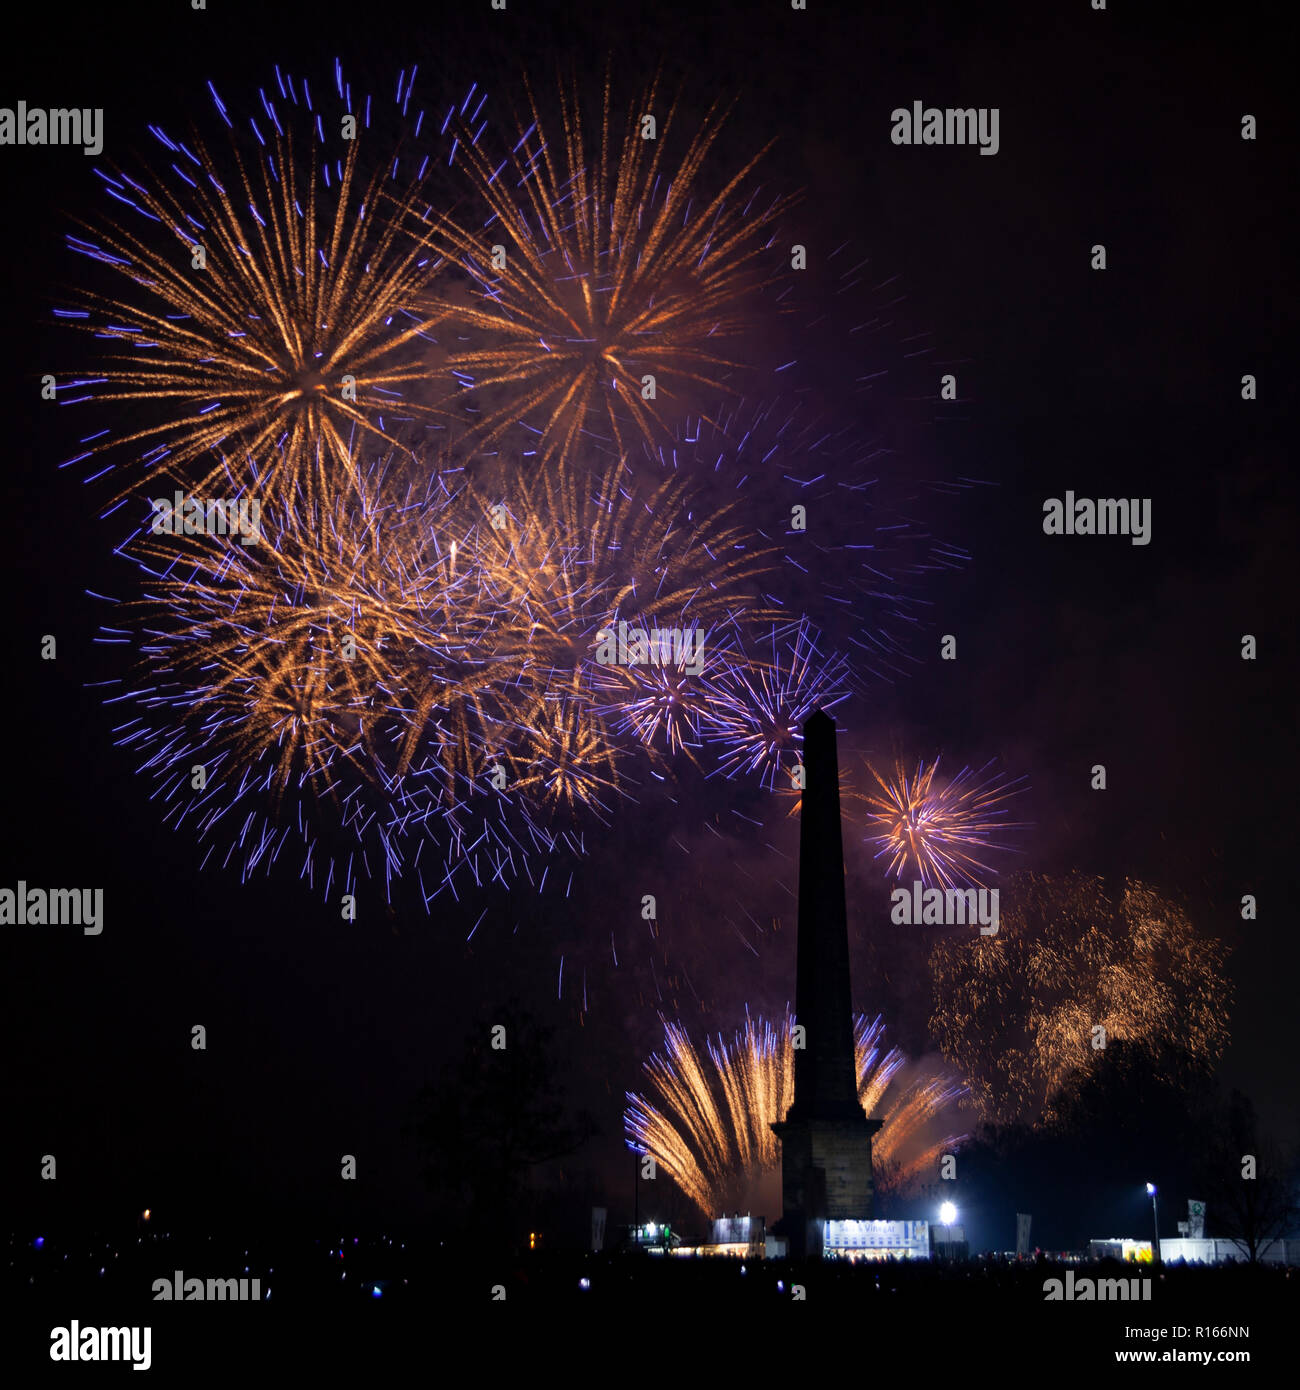 Glasgow Green Fire works - Stock Image